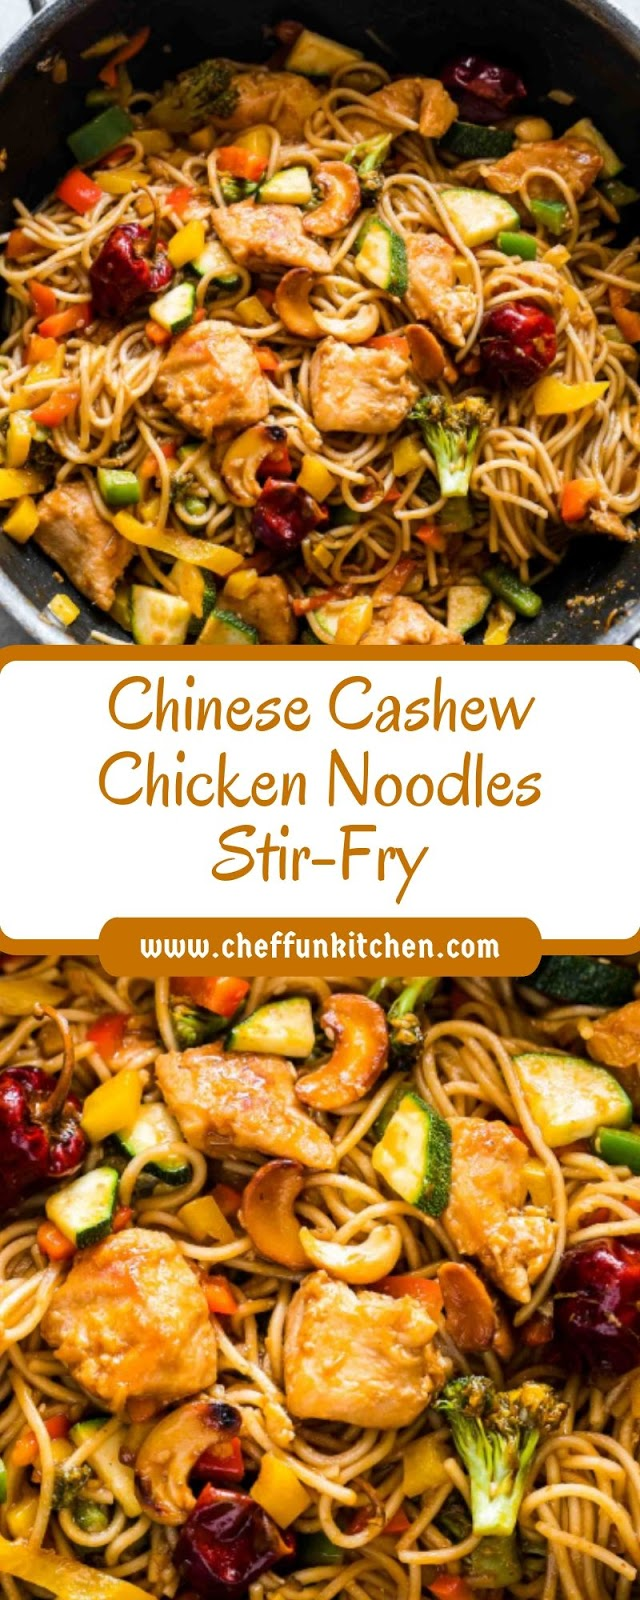 Chinese Cashew Chicken Noodles Stir-Fry